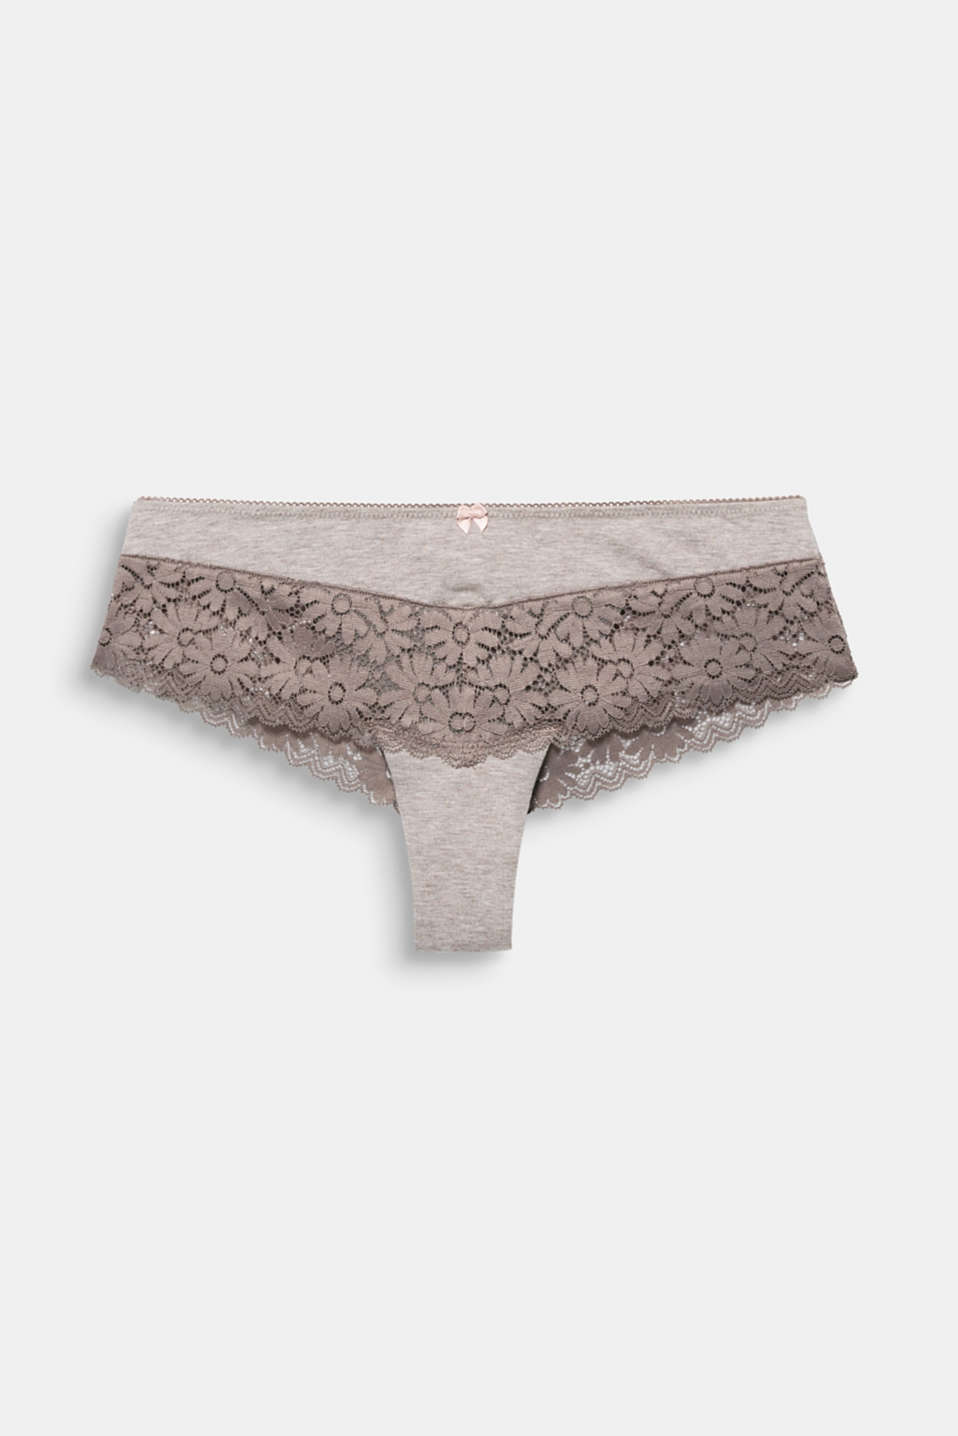 Jersey/lace hipster shorts, LIGHT TAUPE, detail image number 4